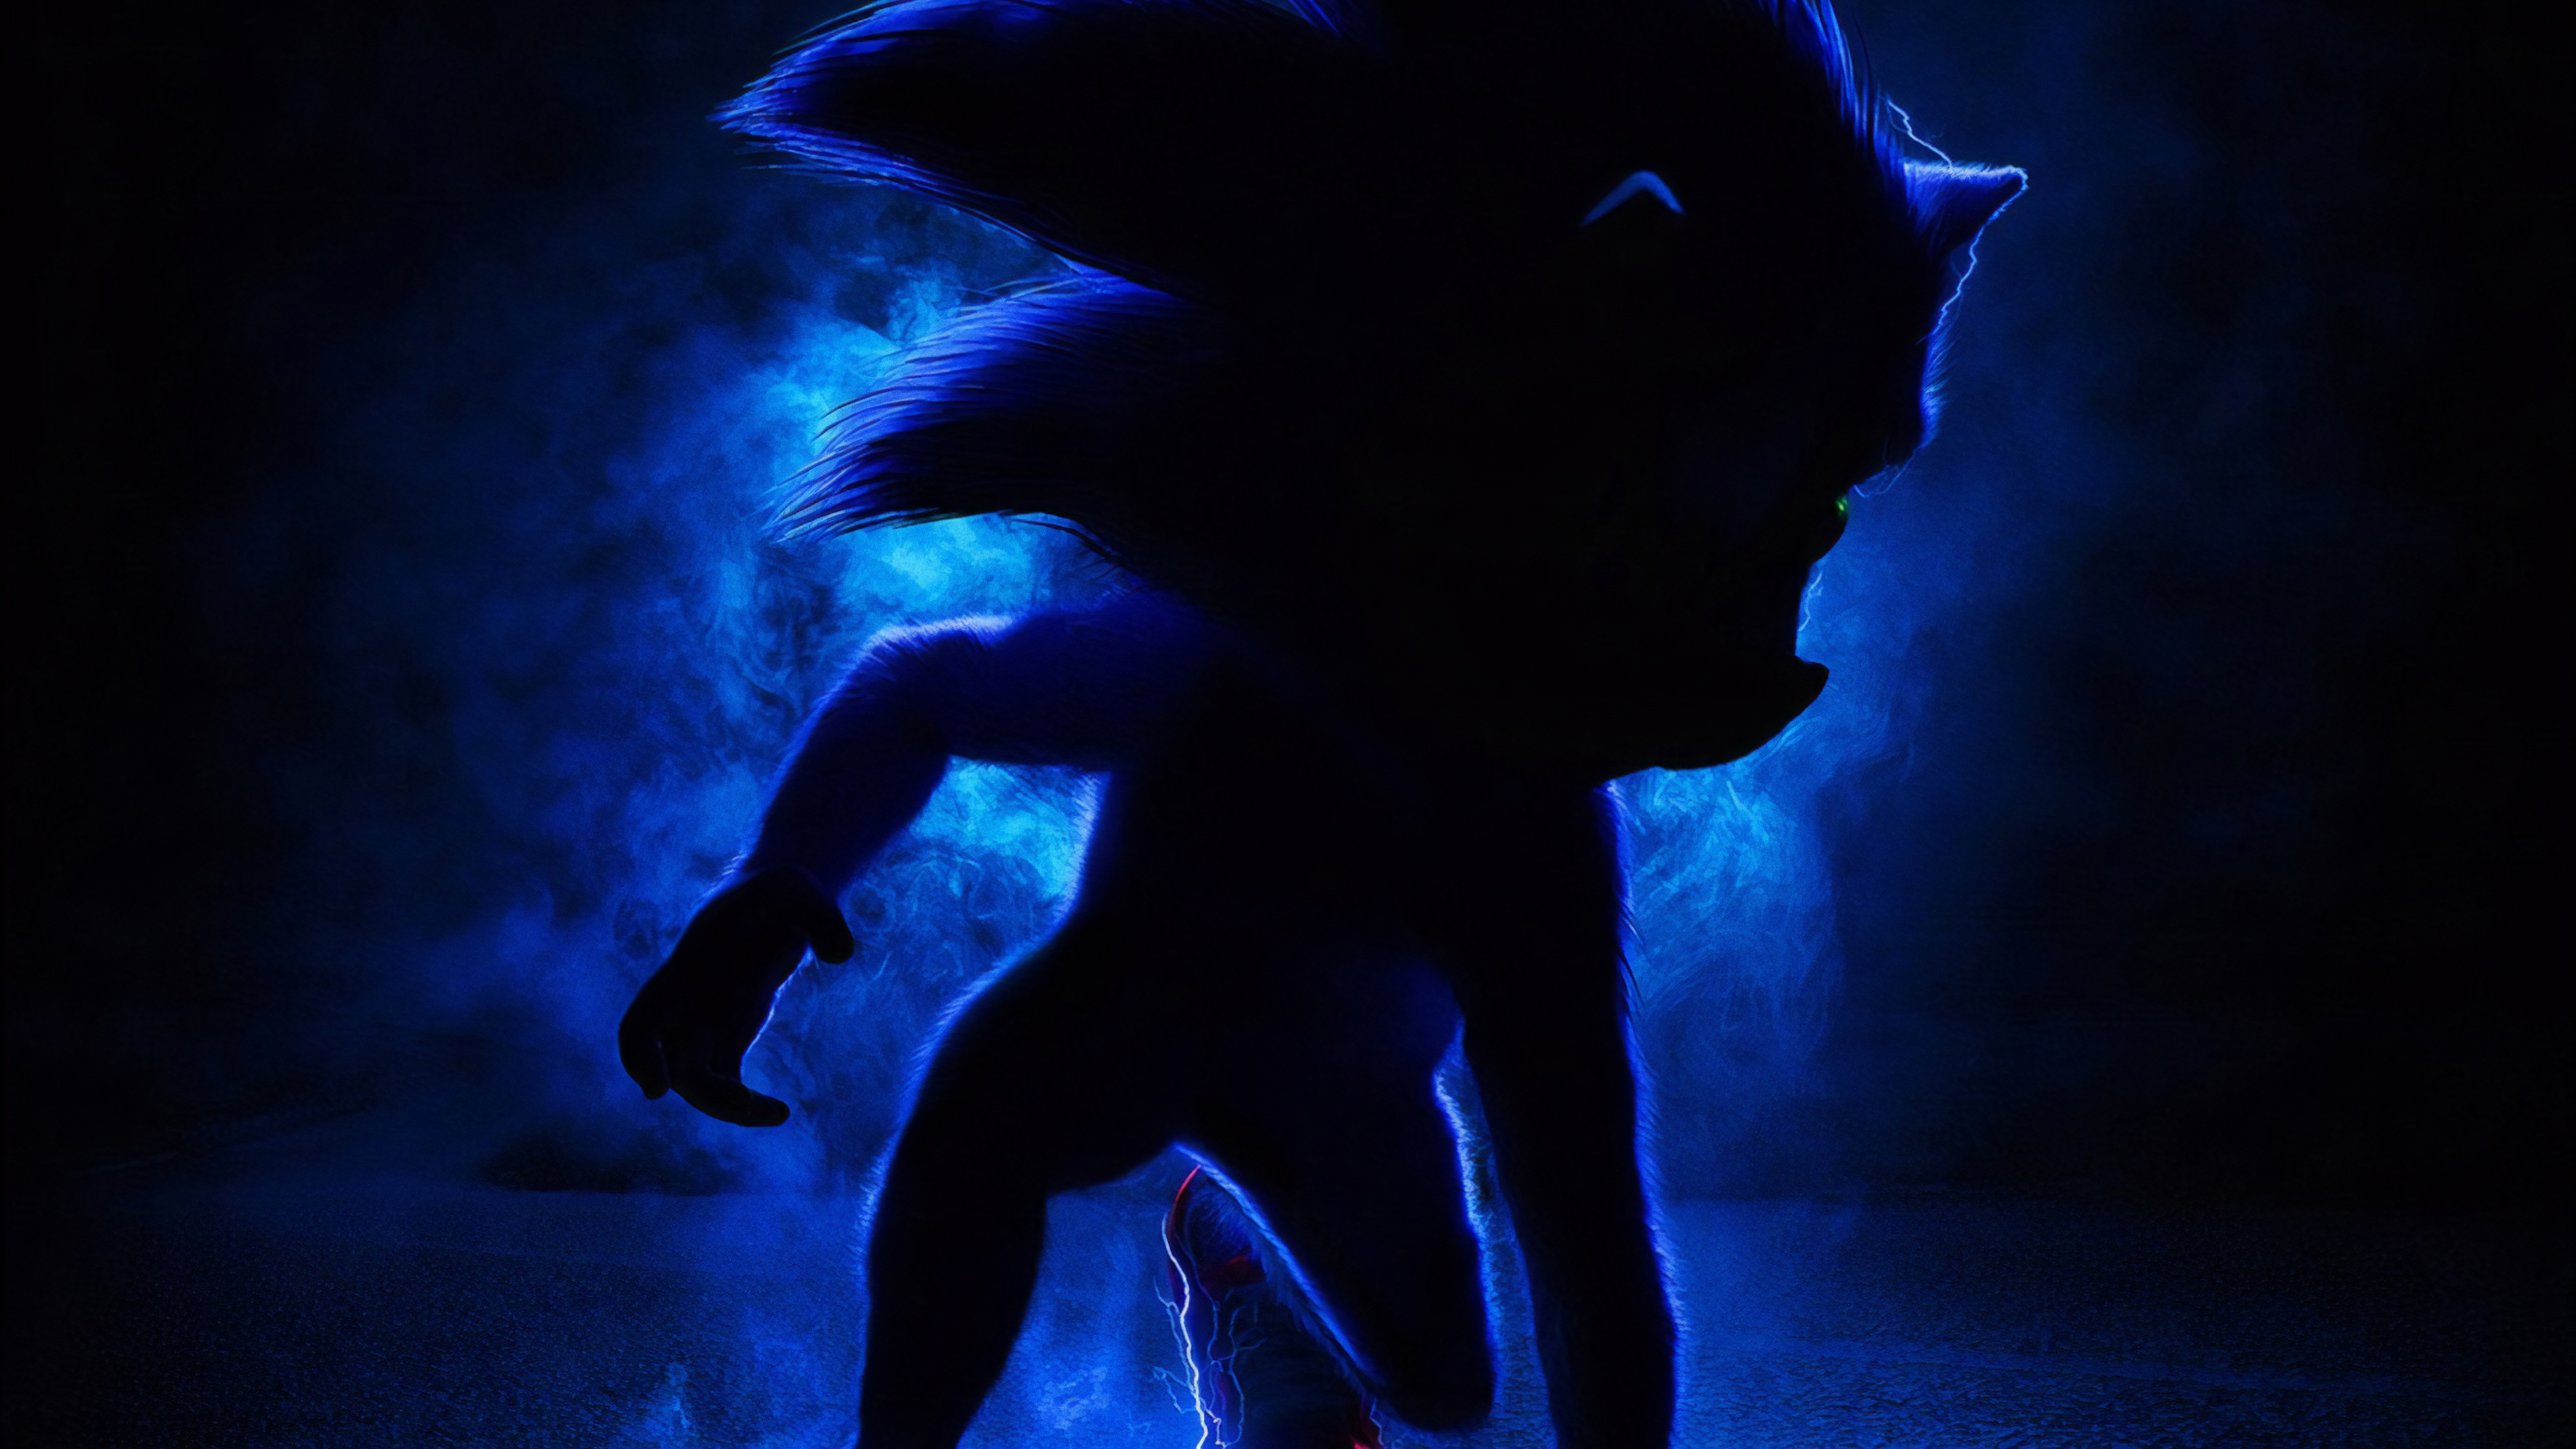 Movie Poster 2019: Sonic The Hedgehog 2019 Movie, HD Movies, 4k Wallpapers